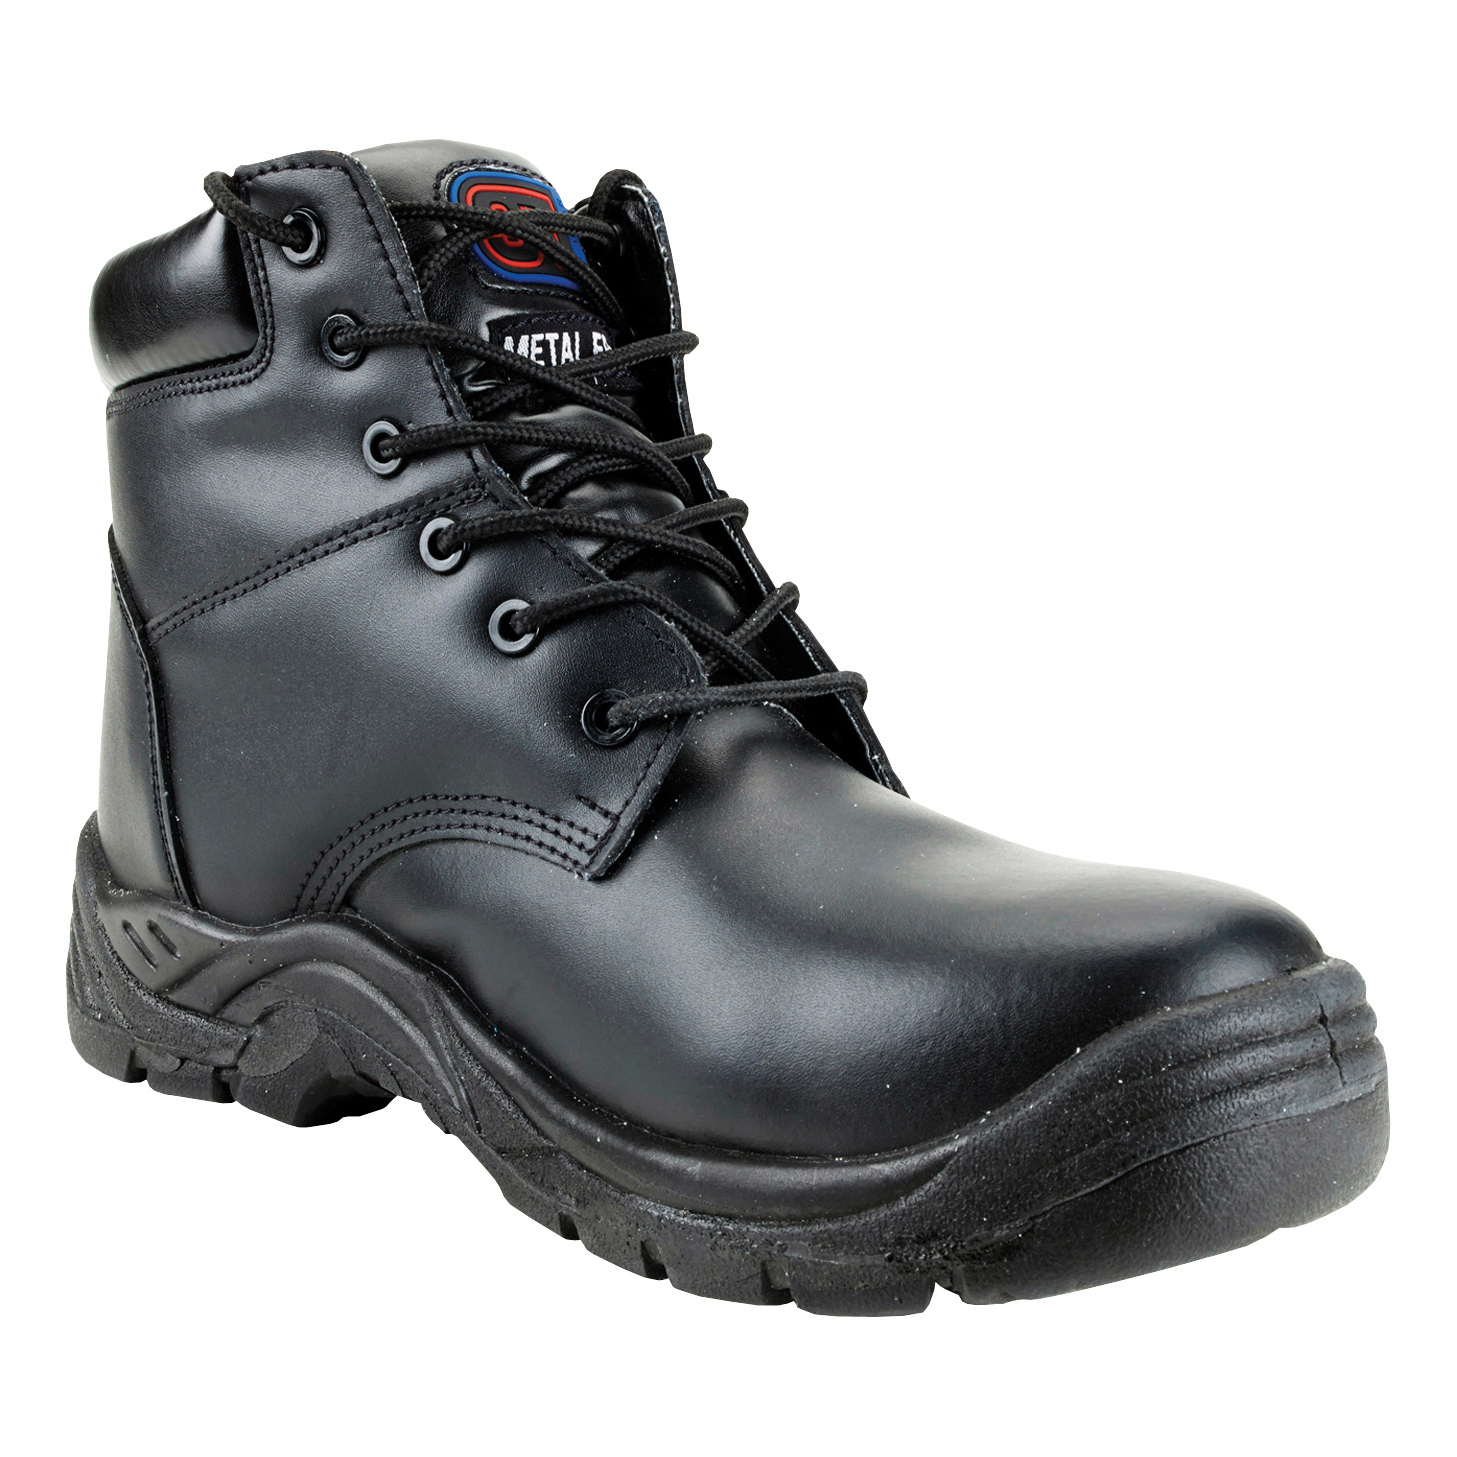 ST Toe Lite Boot Leather Comp' Midsole Safety Toecap Metal Free sze 8 Blk Ref 90173 *Approx 3 Day L/Time*